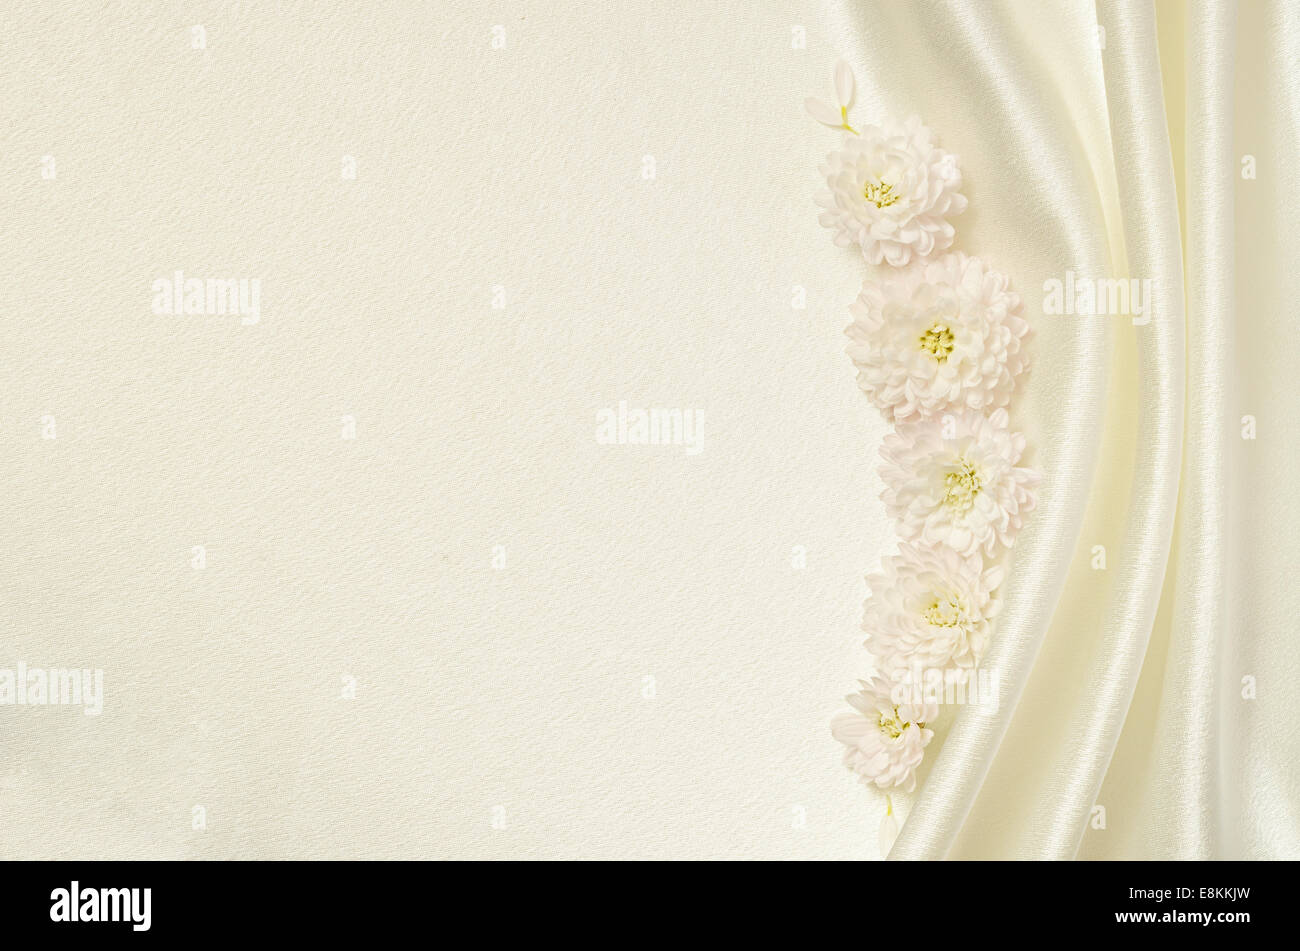 White silk background with flowers and folds - Stock Image